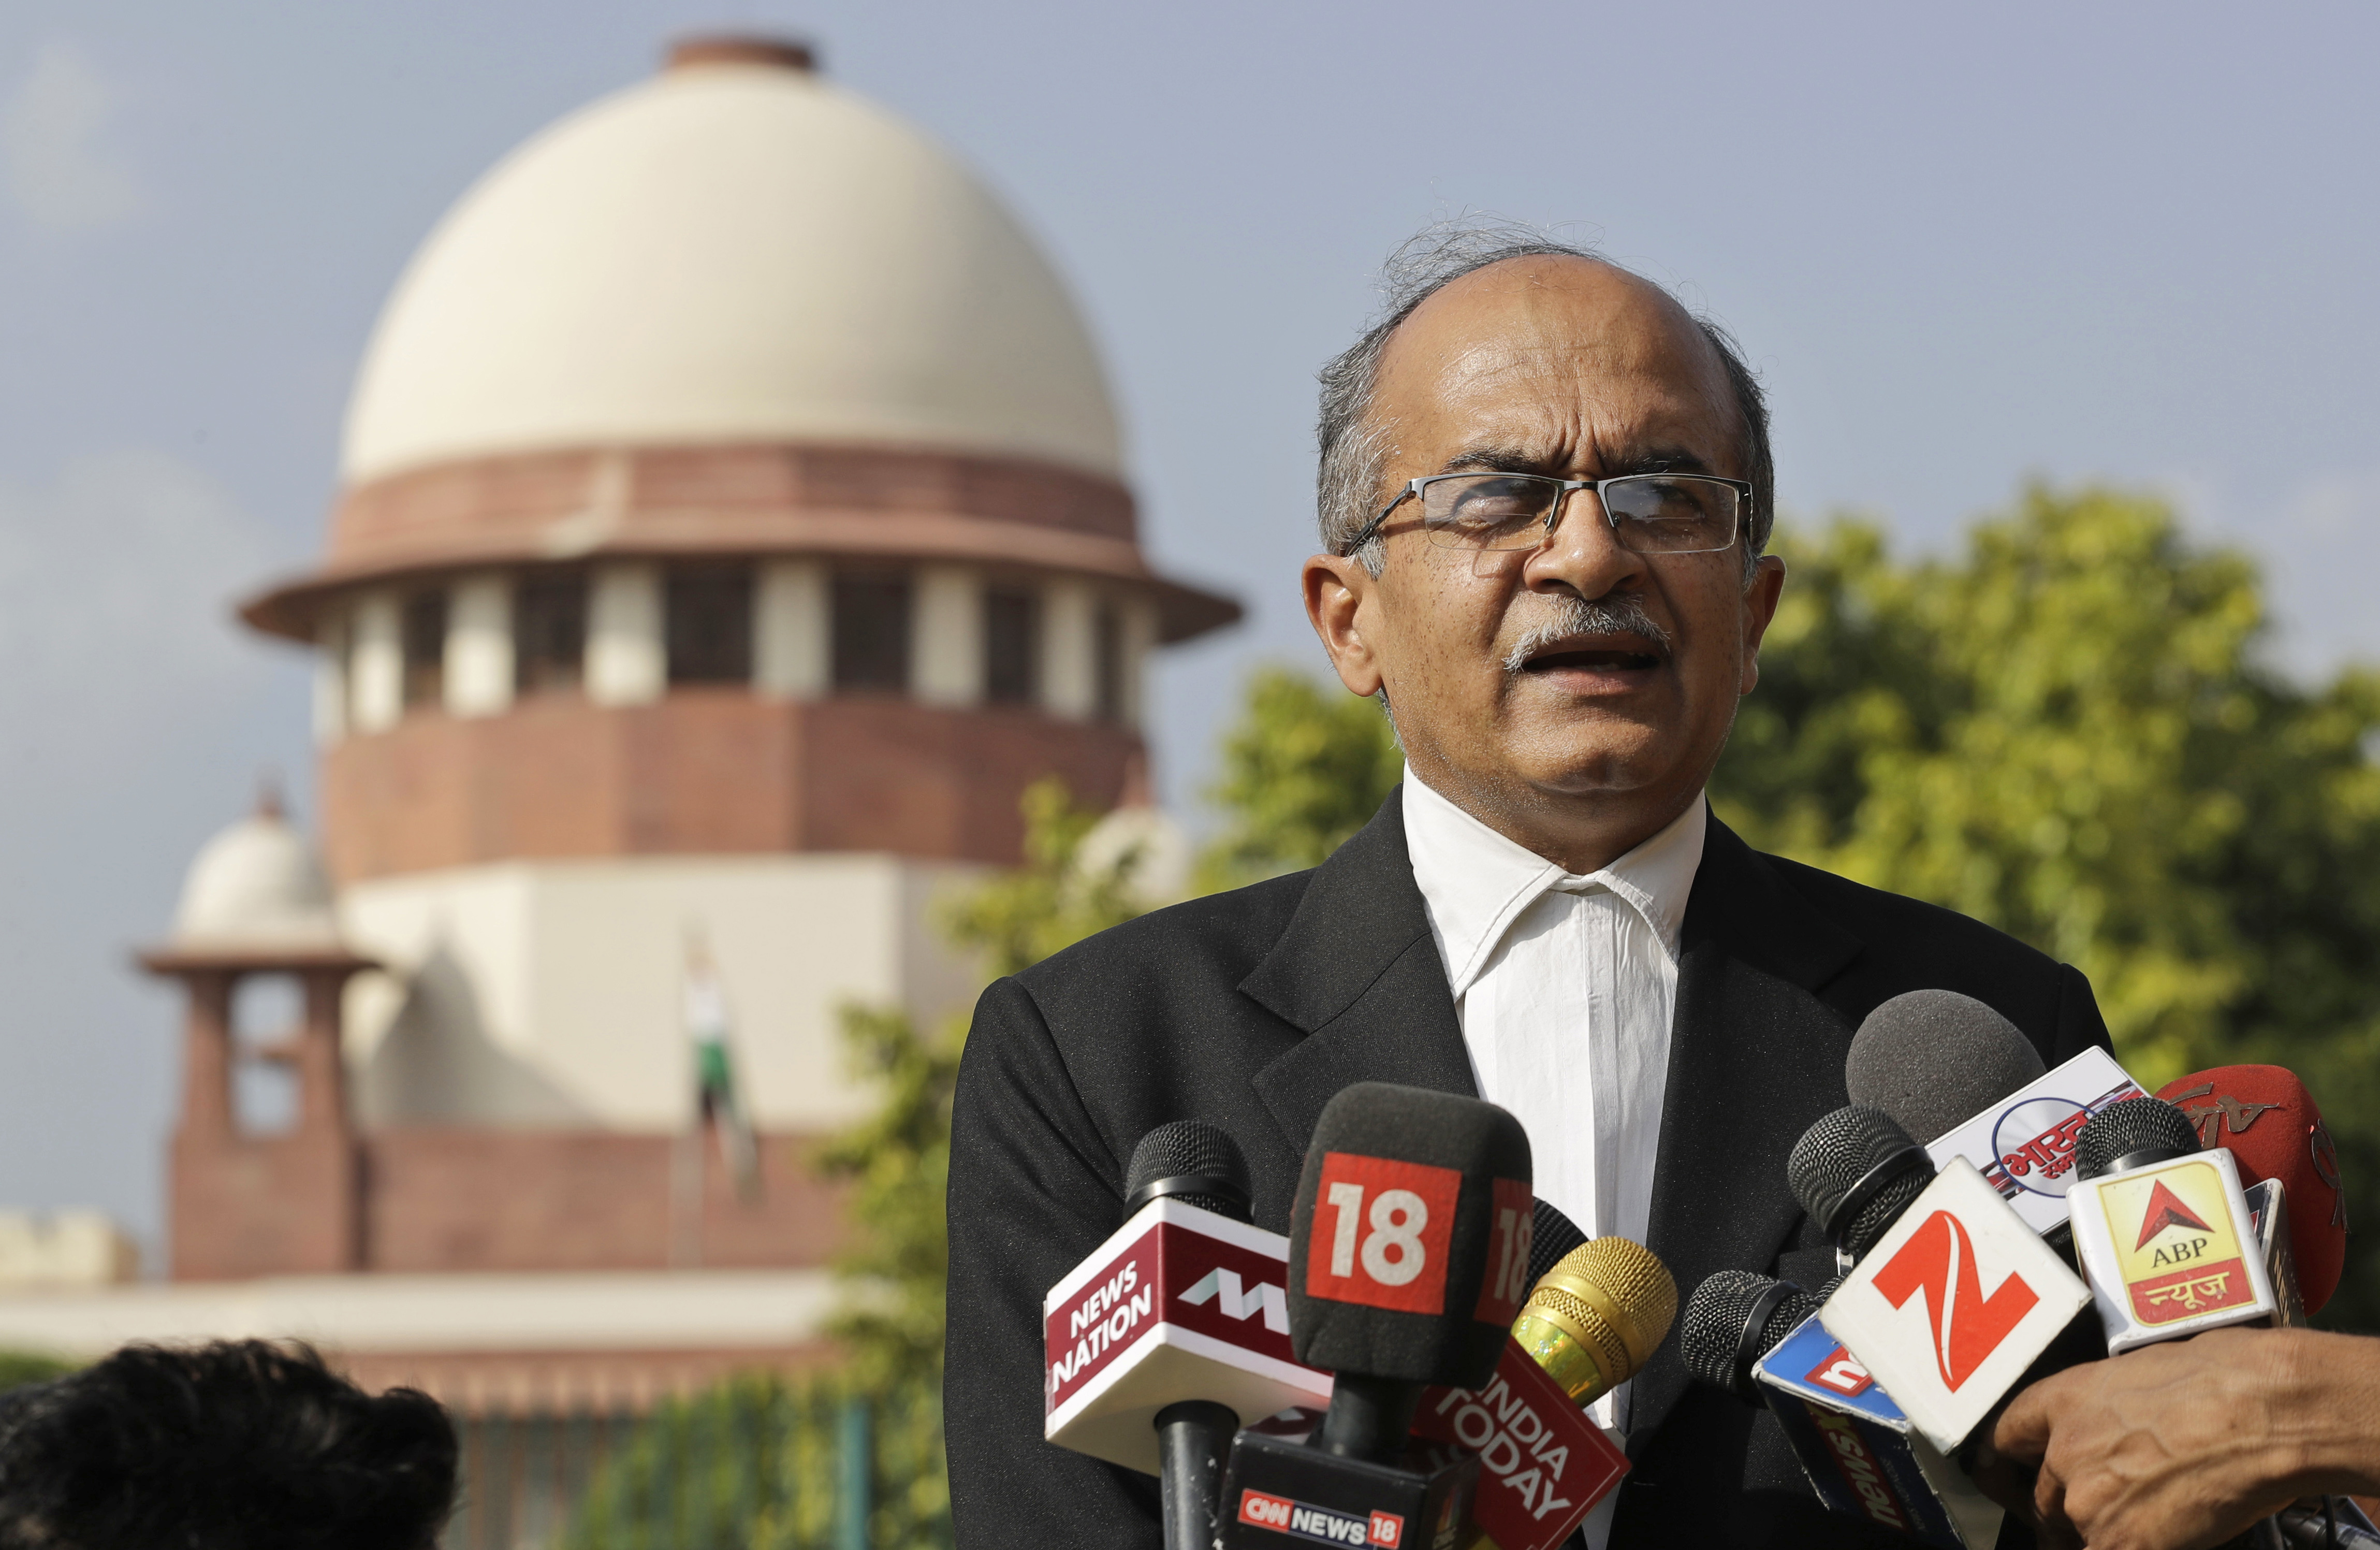 Indian lawyer and social activist Prashant Bhushan speaks to the journalists about the petition filed by two Rohingya Muslim refugees against their deportation to Myanmar, outside the Supreme Court in New Delhi - AP